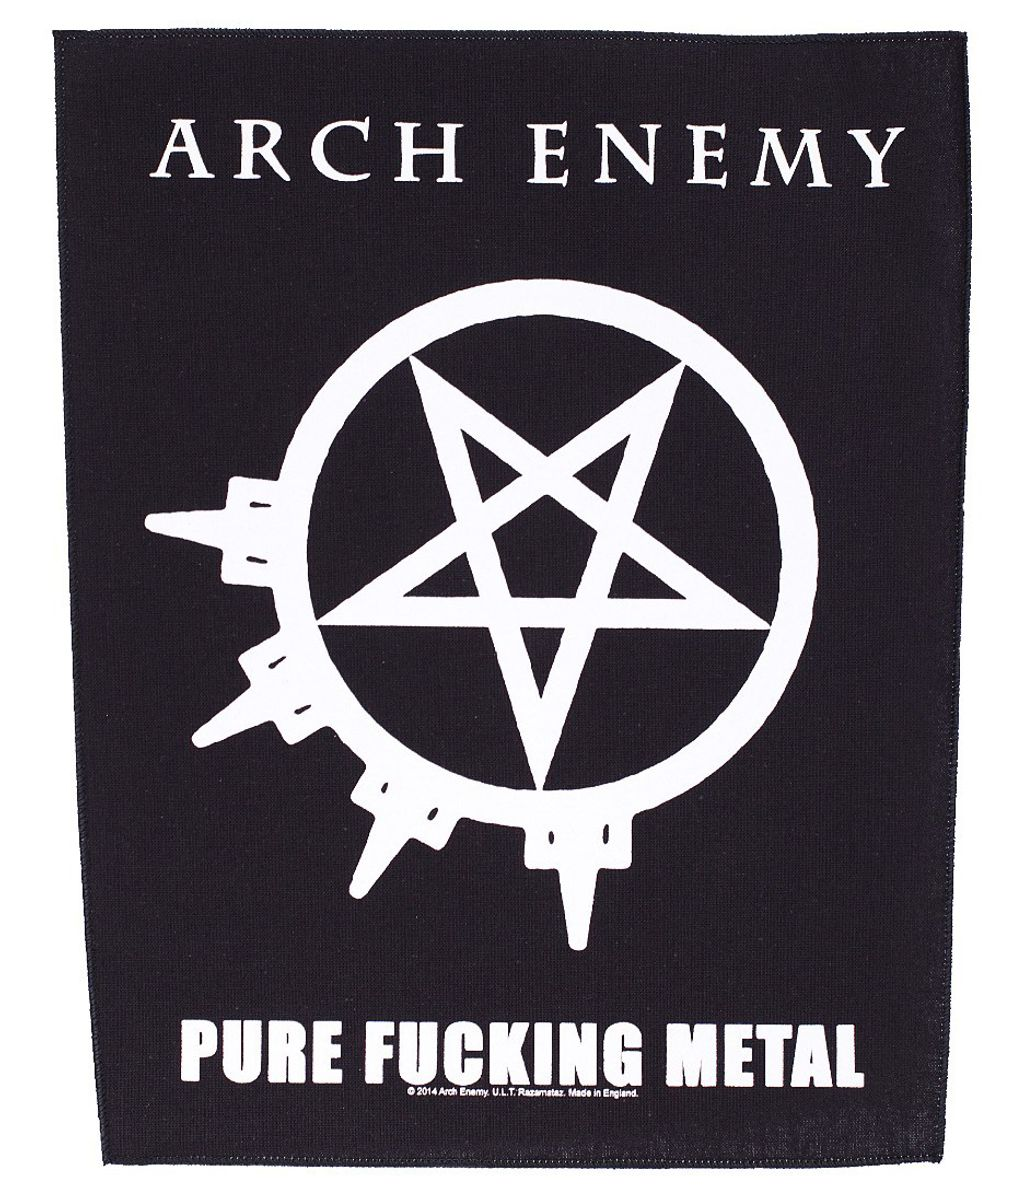 Arch enemy-pure fucking metal Backpatch.jpeg